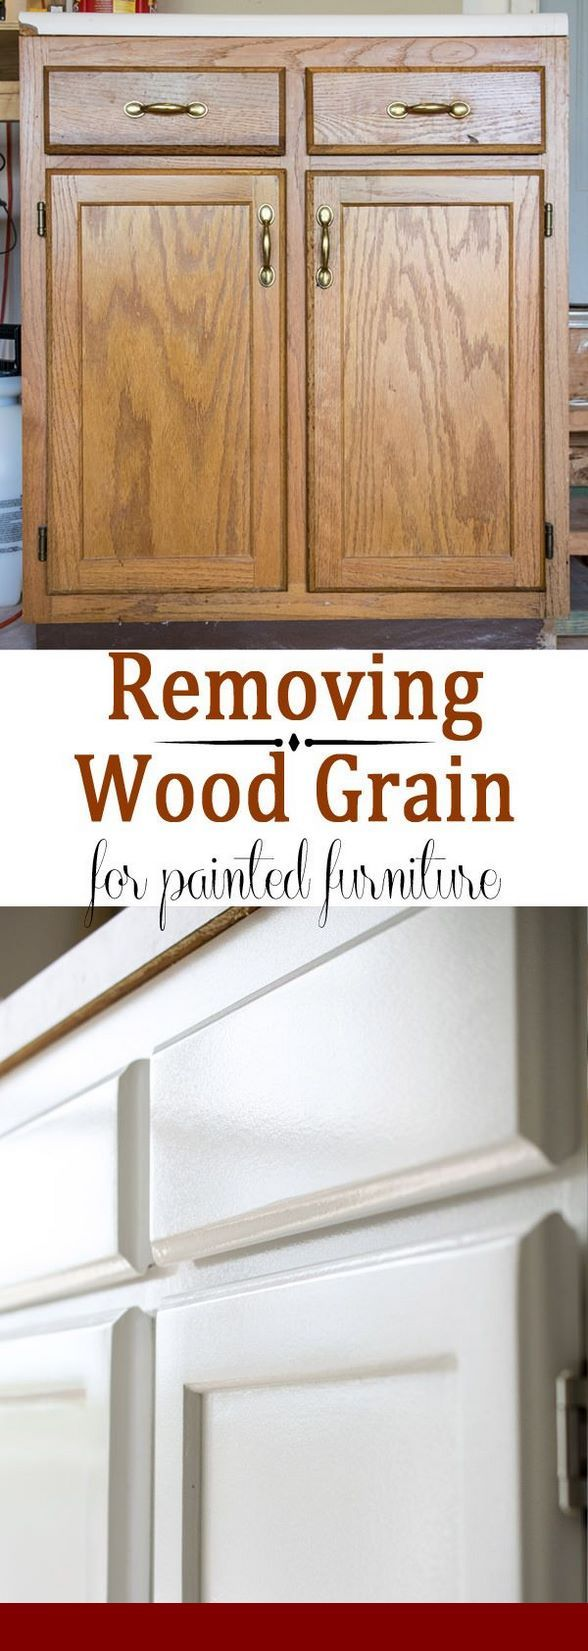 how to wood kitchen cabinets direct oakkitchencabinets rh pinterest com